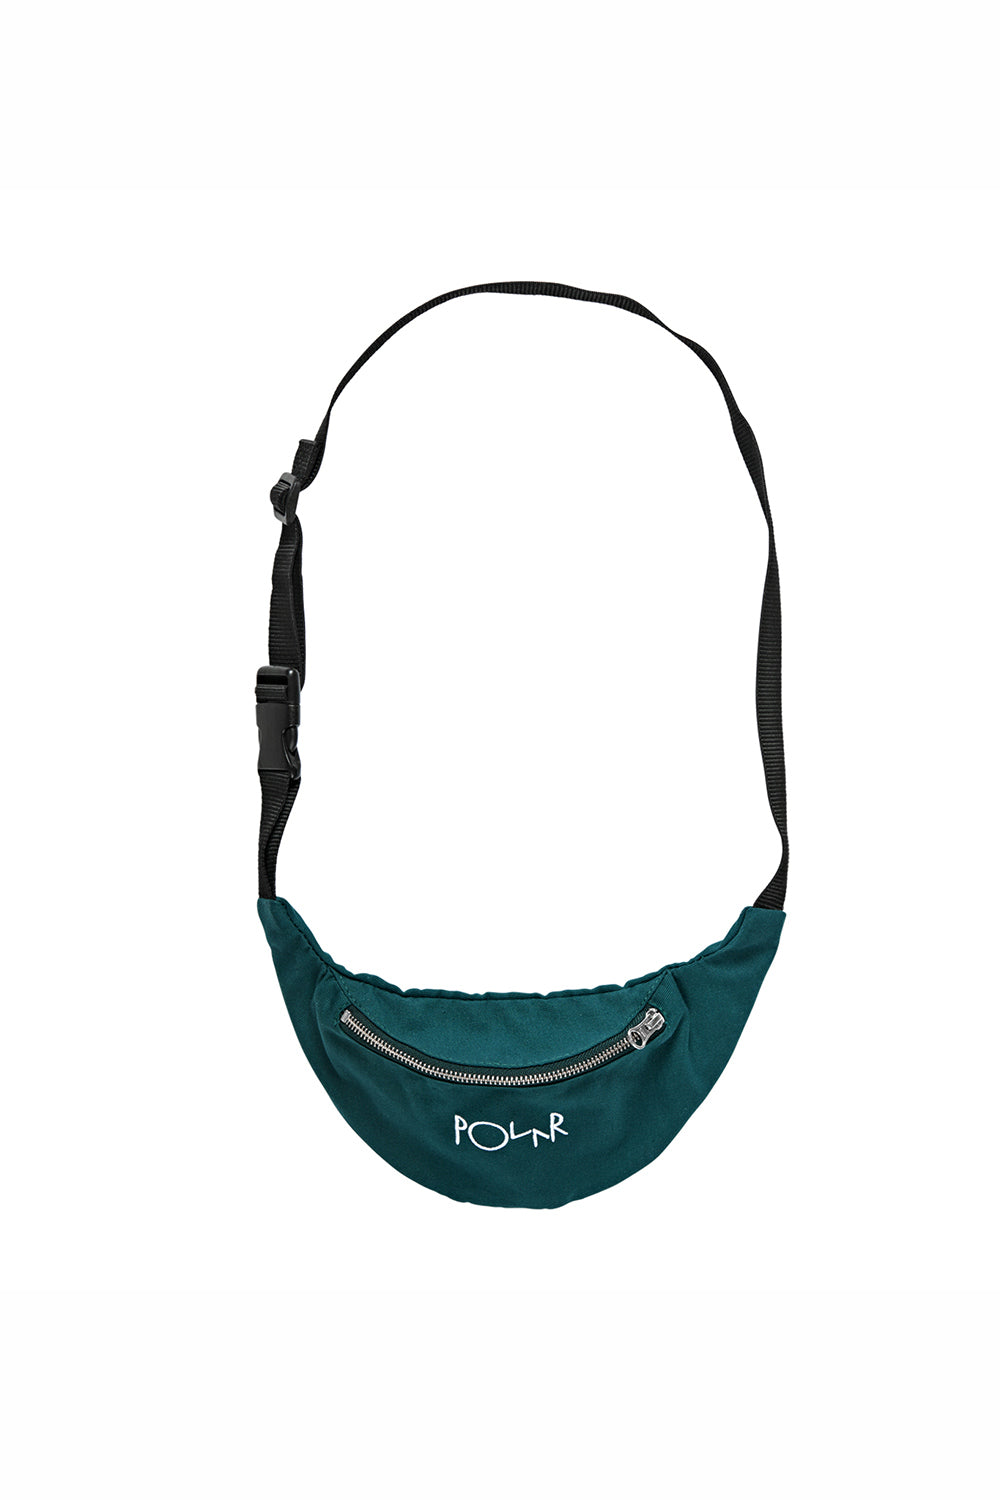 Polar Skate Co Script Logo Hip Bag - Dark Green | Buy Polar Skate Co Online